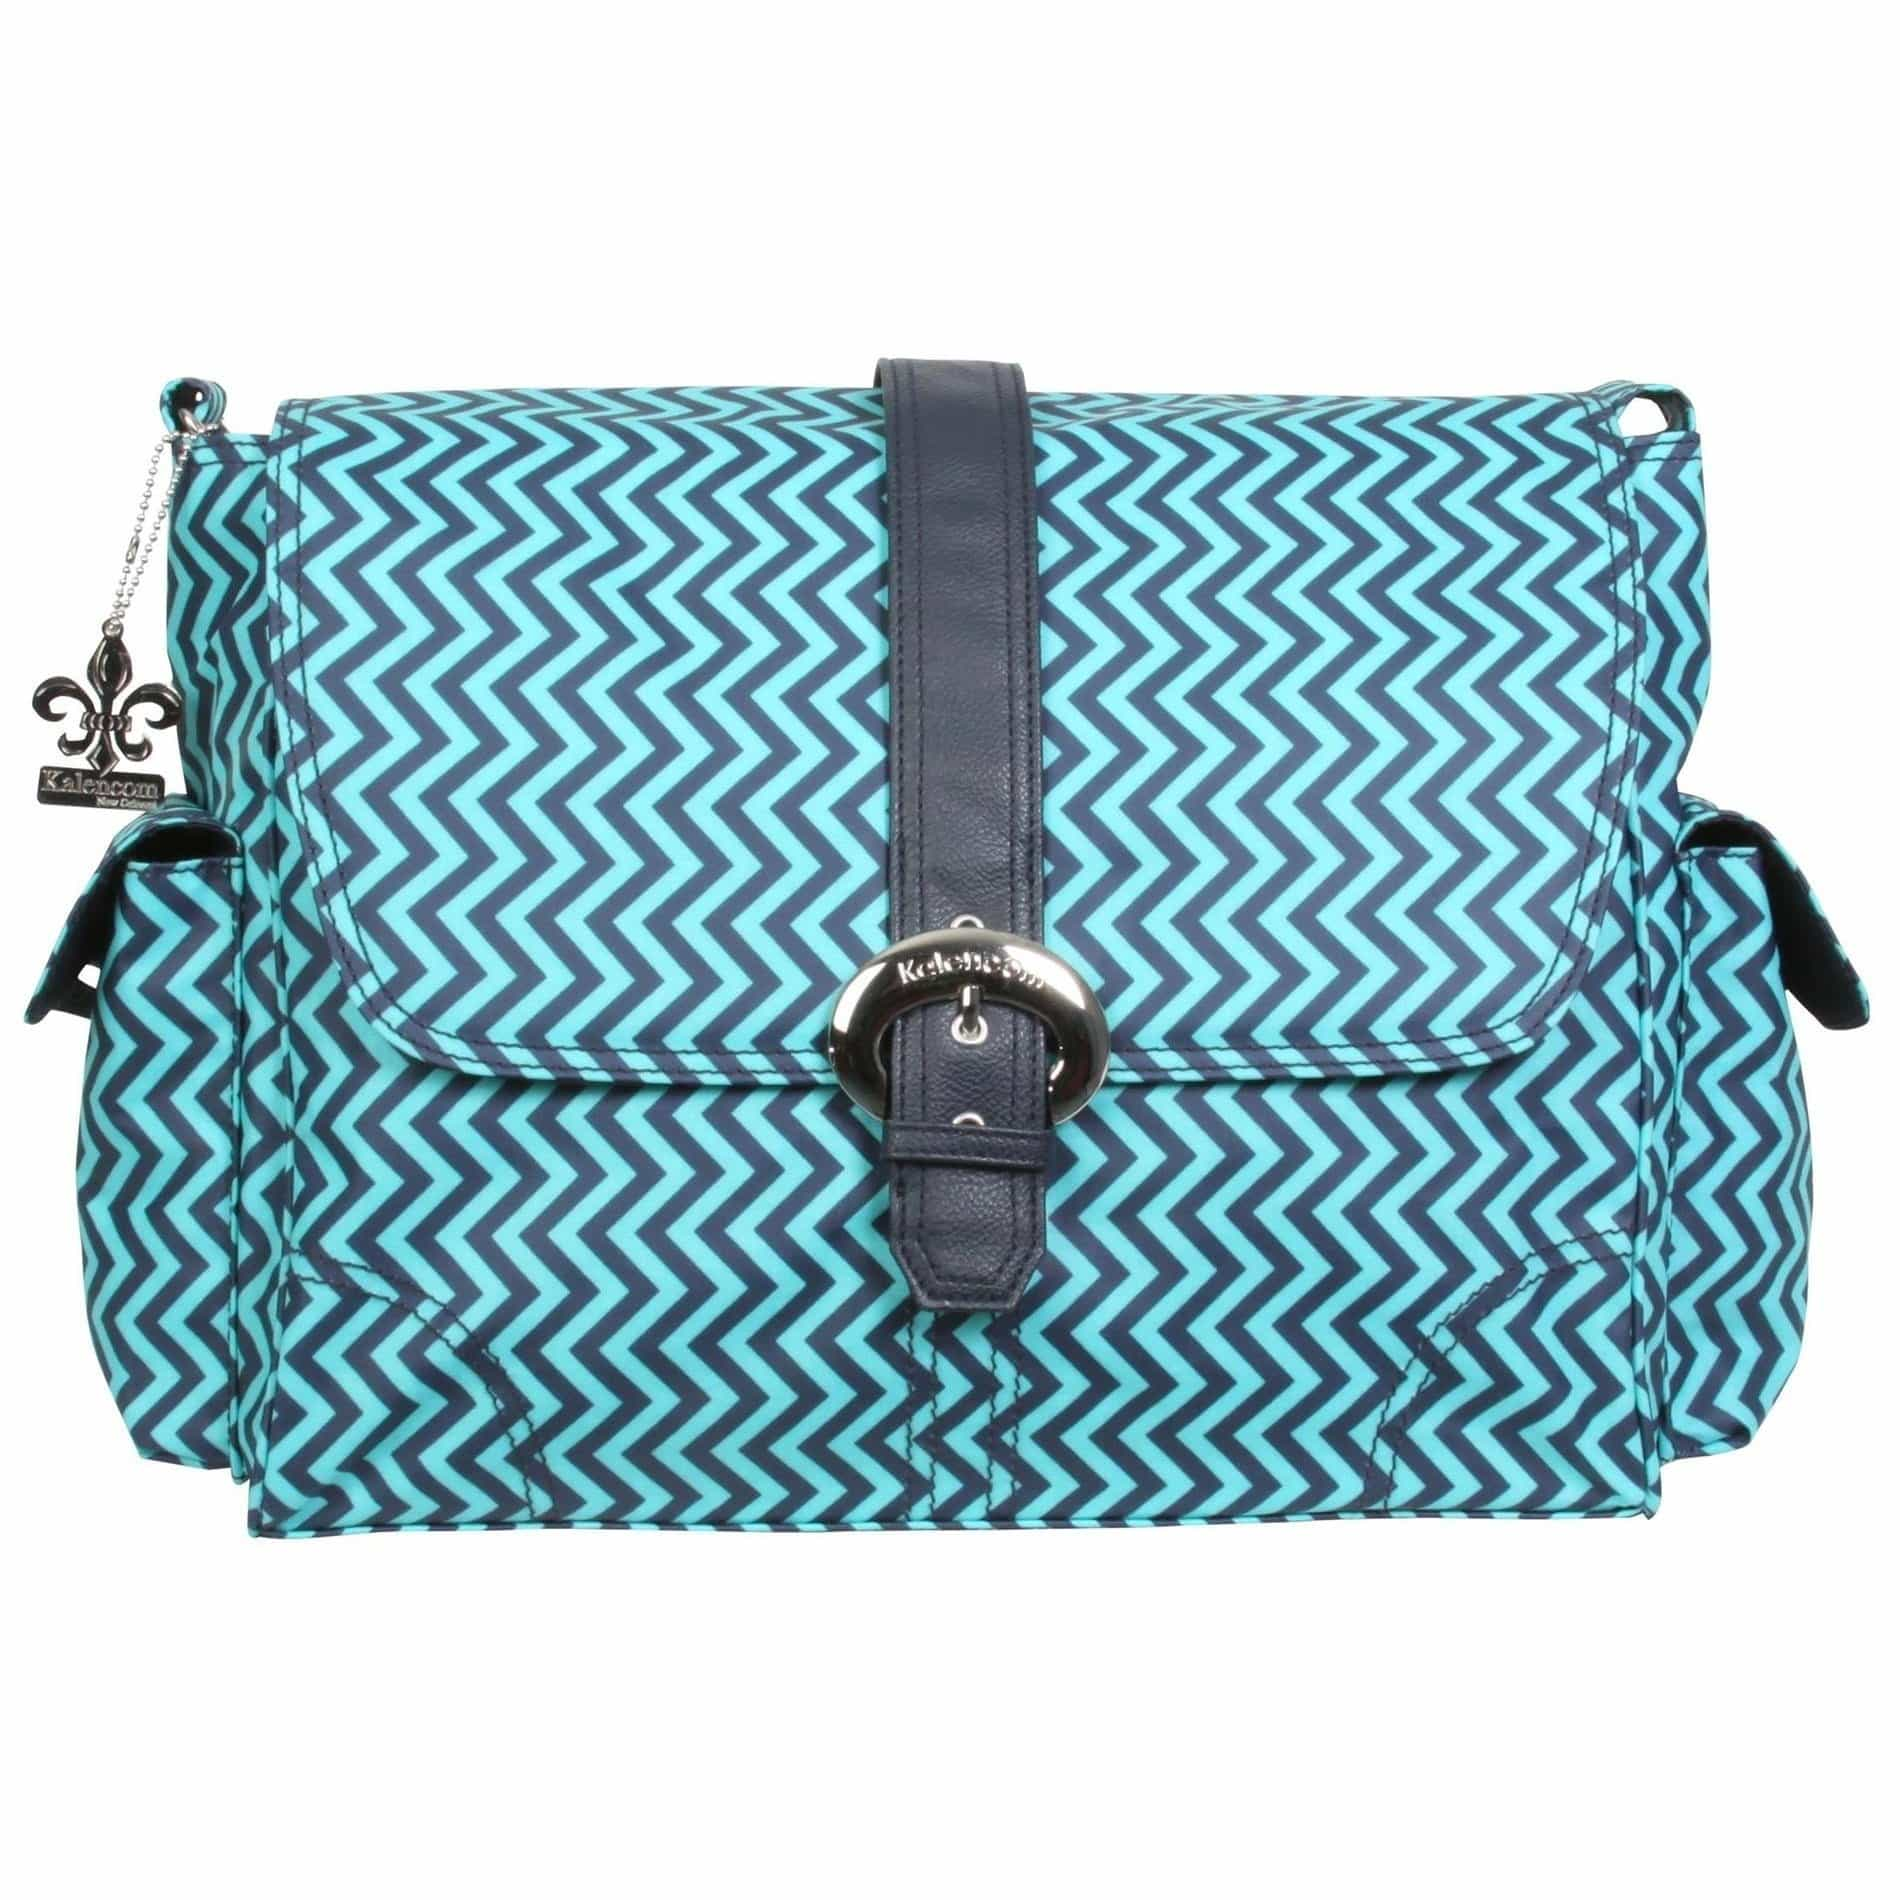 Wiggly Stripes - Ocean Matte Coated Buckle Diaper Bag | Style 2960 - Kalencom-Diaper Bags-Default-Jack and Jill Boutique